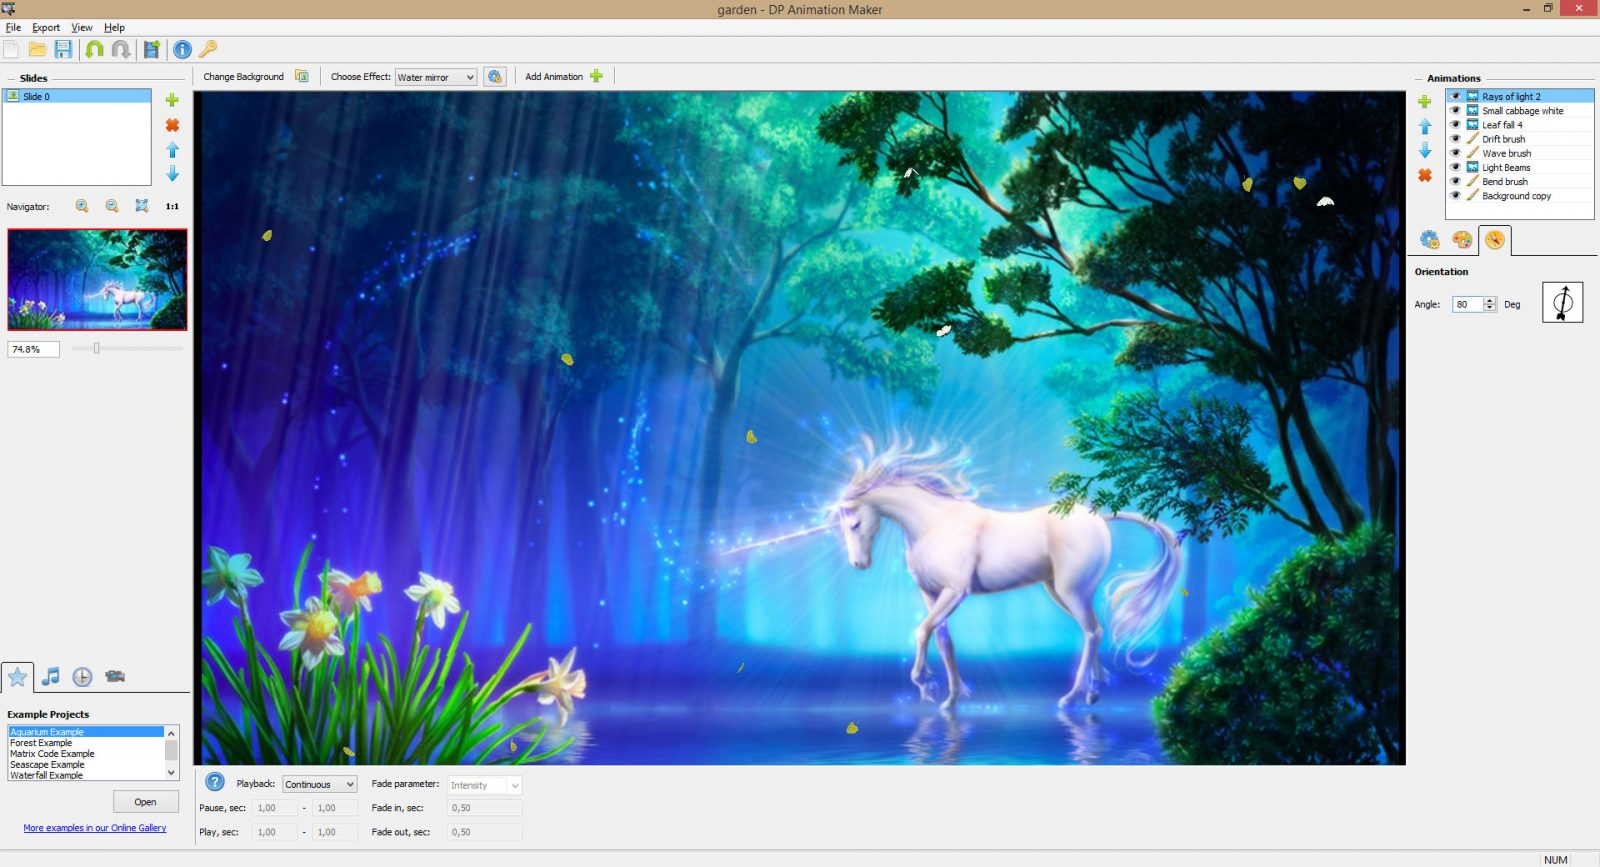 DP Animation Maker 3.4.32